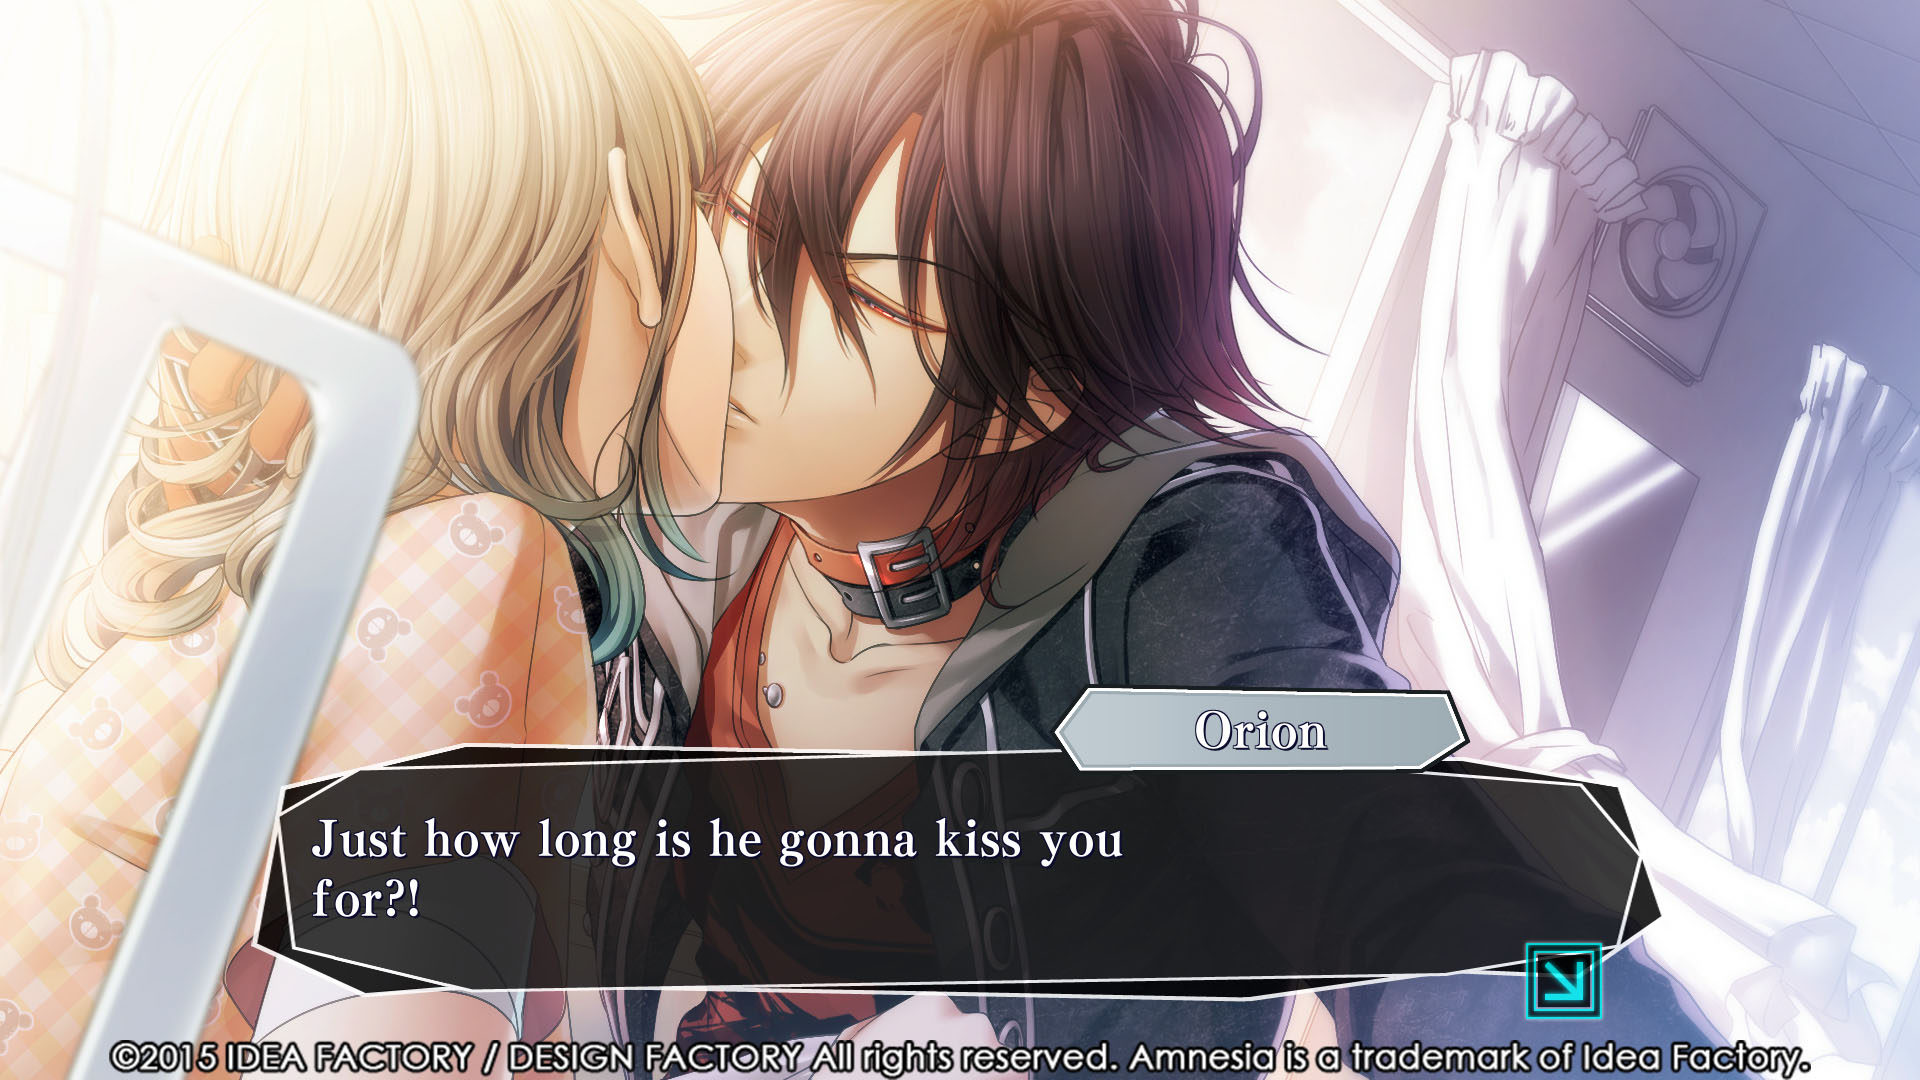 anime boy dating simulator for girls games online play